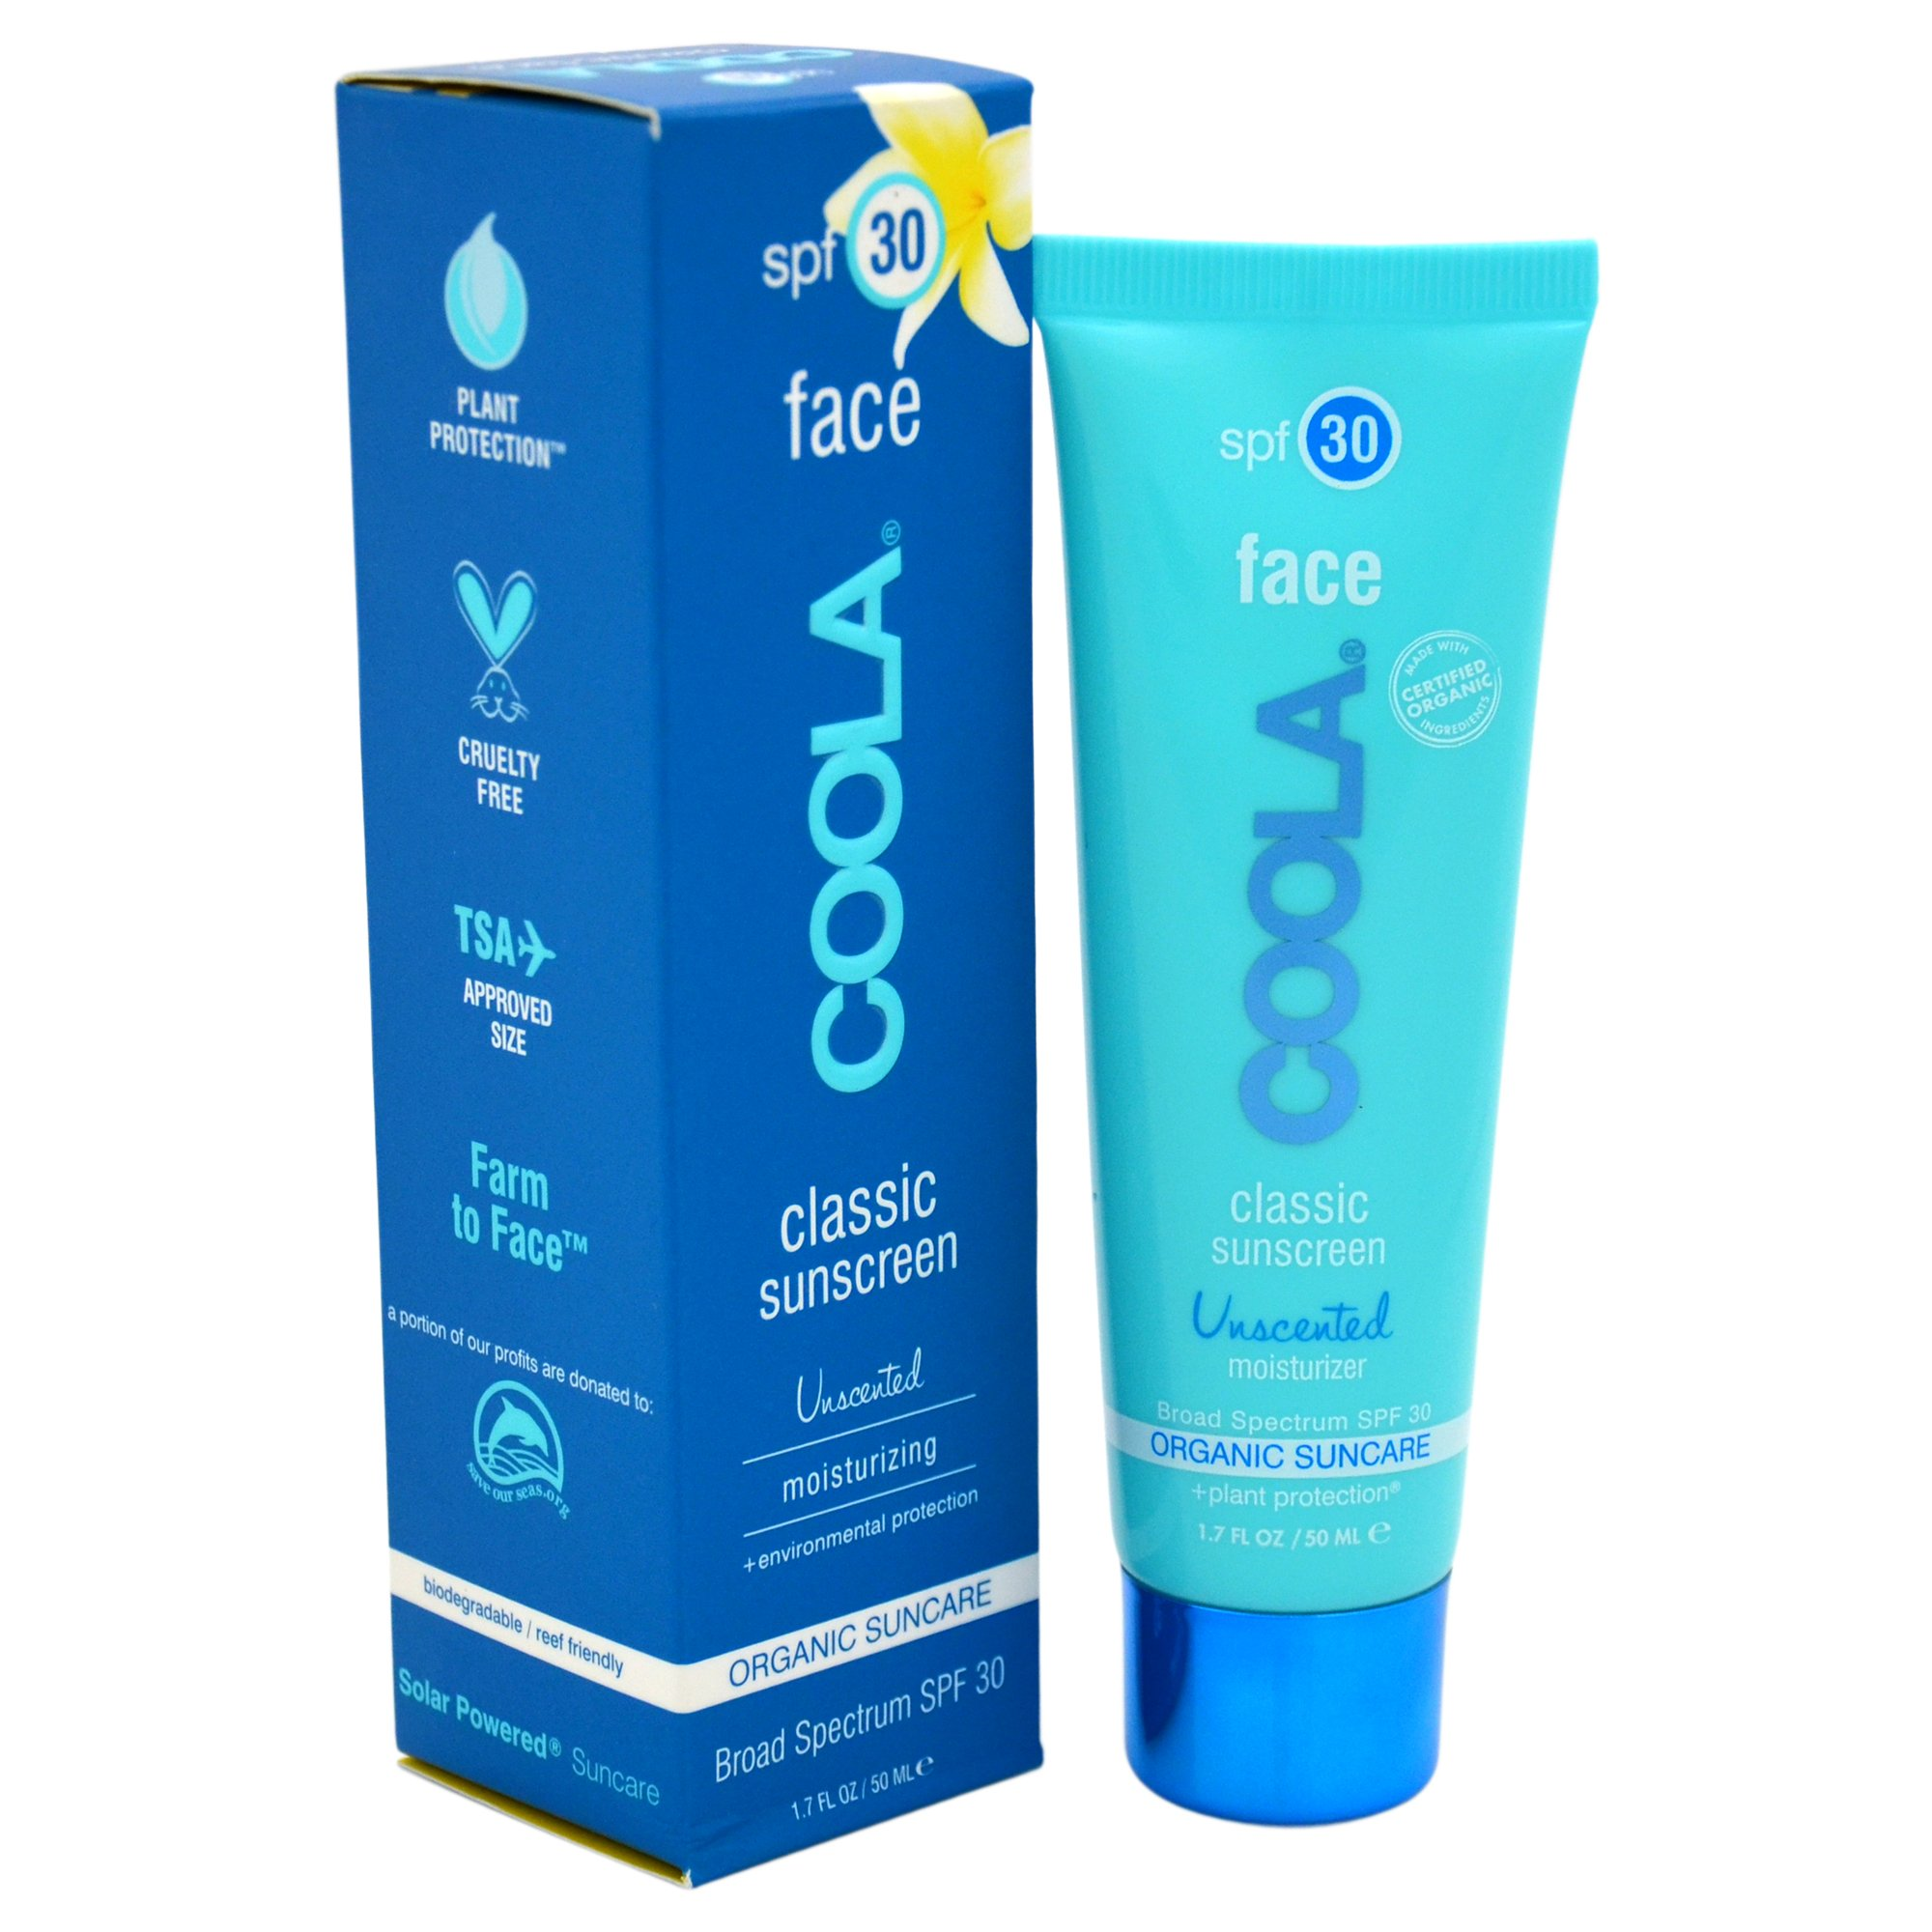 COOLA Organic Classic Unsented Daily Face Sunscreen|Broad Spectrum SPF 30|Daytime Lotion +Sunscreen All-In-One|Sheer Finish|Lightweight|Water Resistant|Reef Friendly|TSA Approved Travel Size